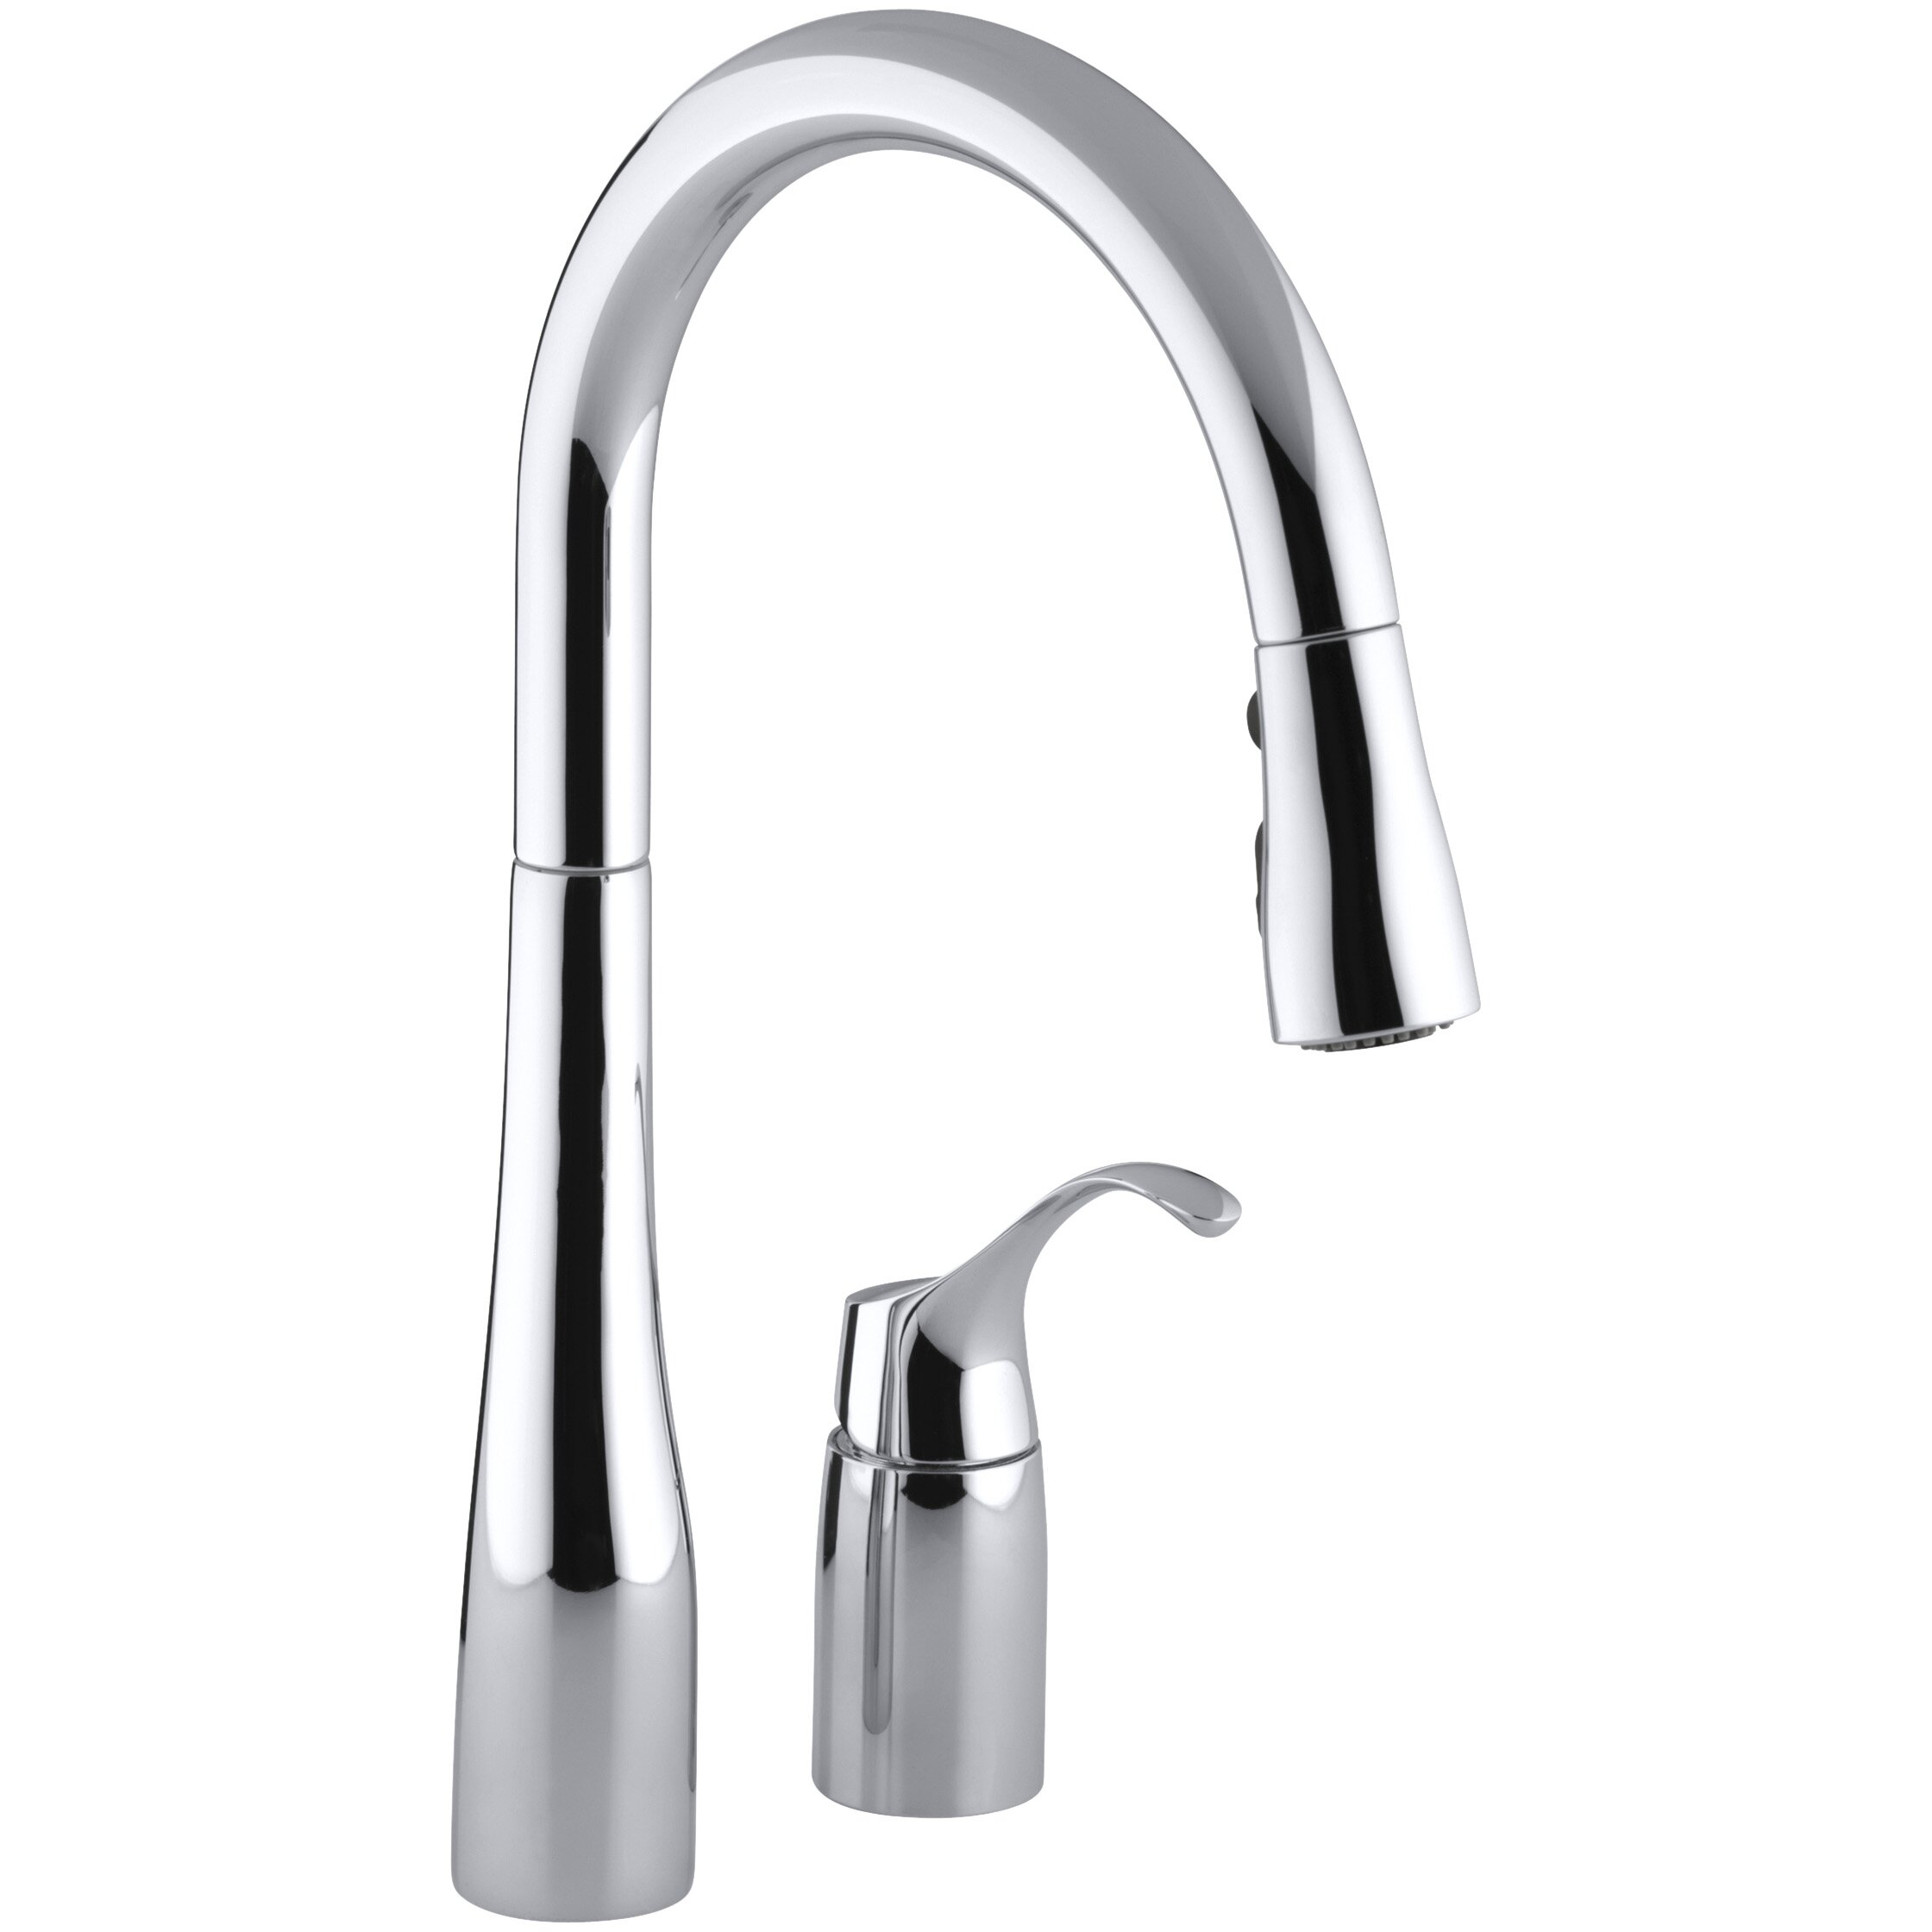 kohler kitchen sink faucet kohler simplice two kitchen sink faucet with 16 1 8 6690